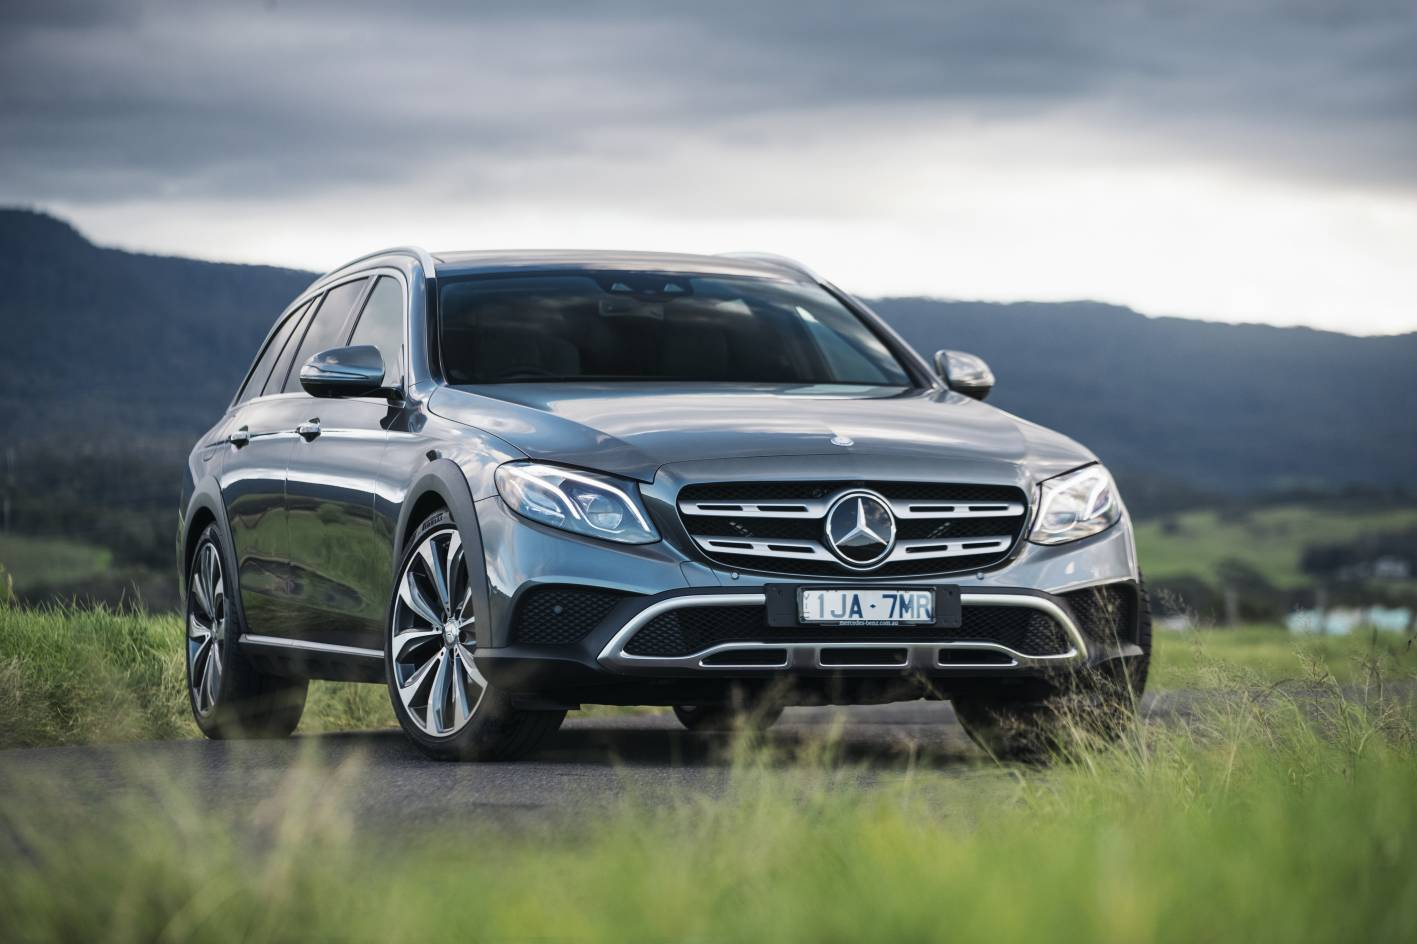 2017 Mercedes-Benz E 220 d All-Terrain First Drive Review   A Benz Wagon With The Soul Of An SUV